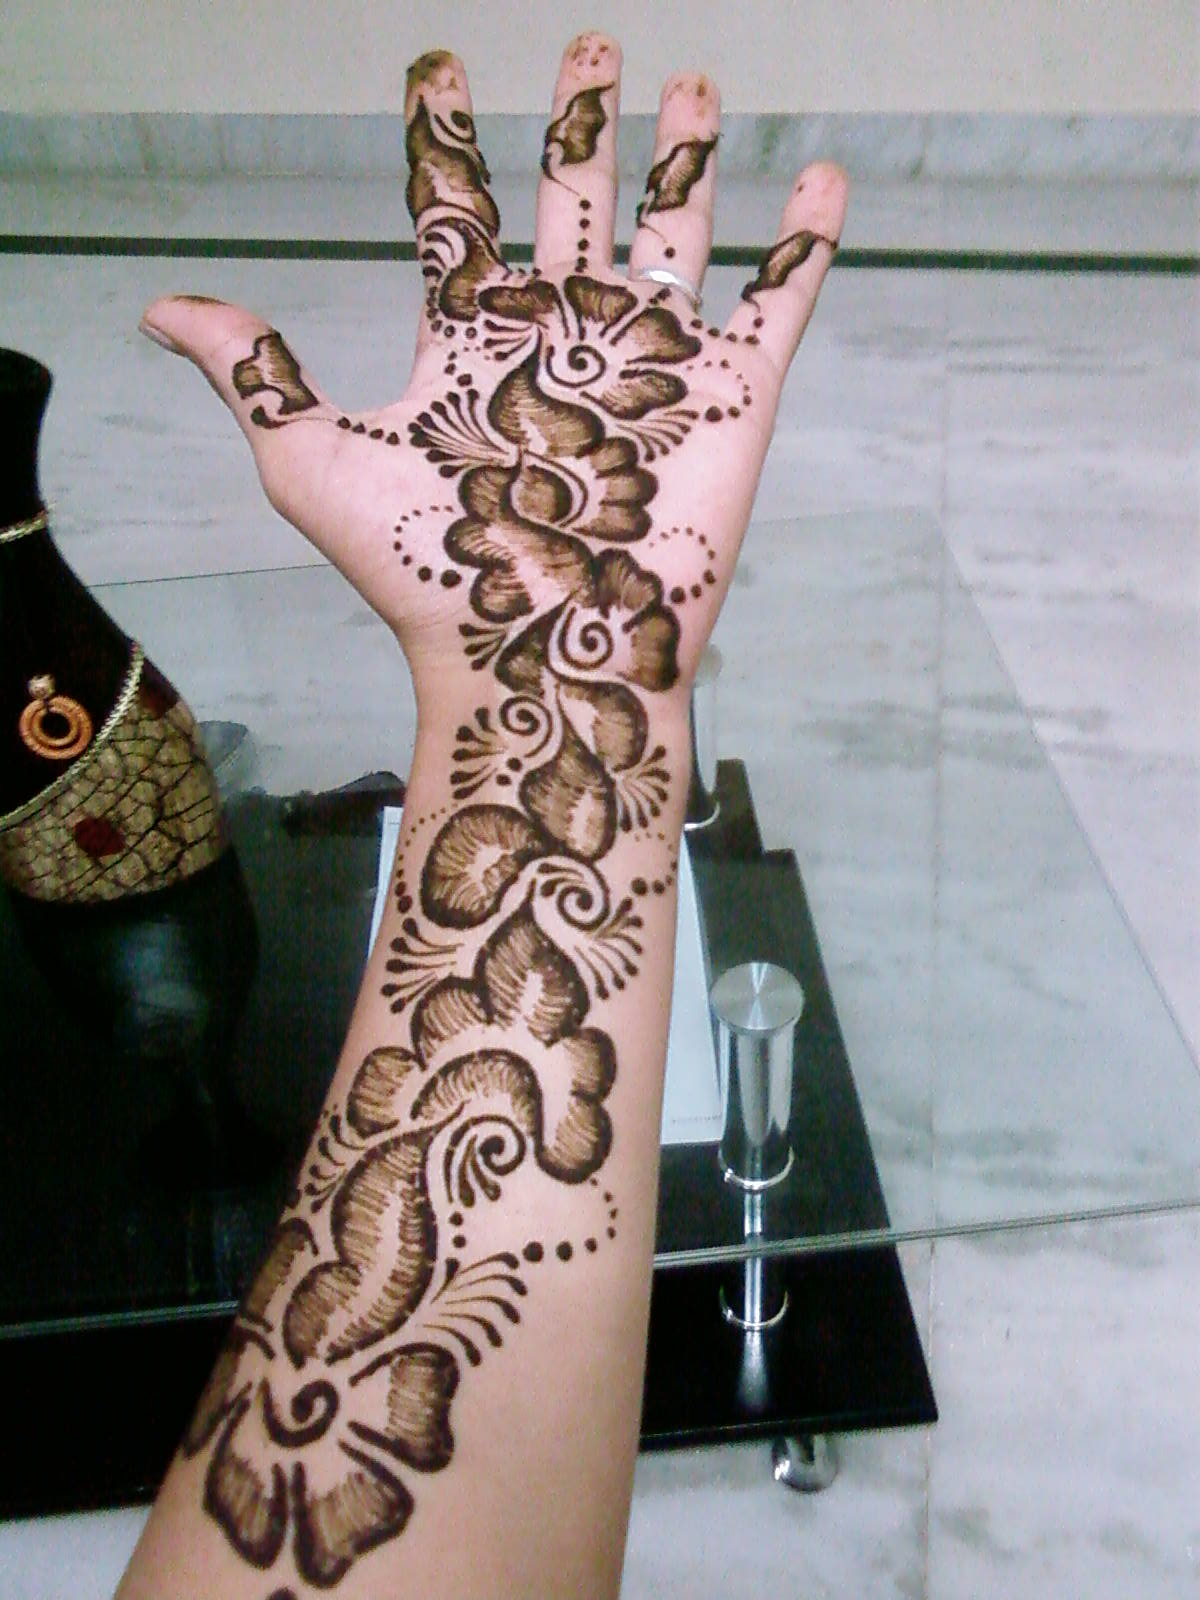 Learn Mehndi Patterns : Get started with mehndi introduction to